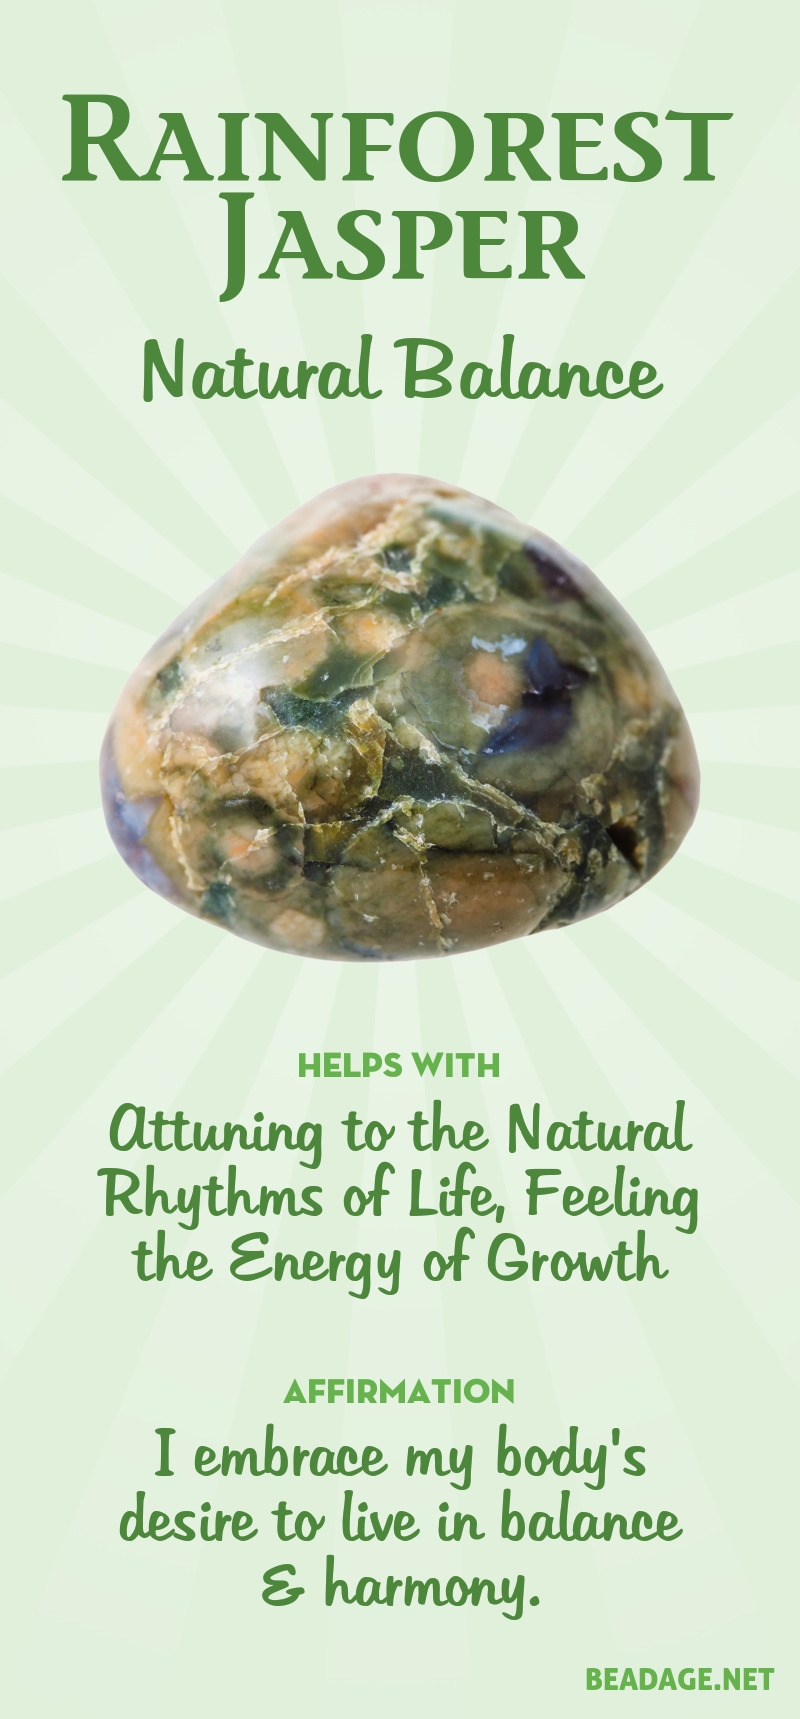 Rainforest Jasper connects you to Planet Earth, the joy of being alive, the energy of growth, and the desire to be in balance with nature. It can help you realign your busy life and find your own natural rhythm of balance and harmony. It can help you let go of negative physical habits like overeating or smoking, and create a naturally healthy state of everyday existence. Learn more about Rainforest Jasper meaning + healing properties, benefits & more.